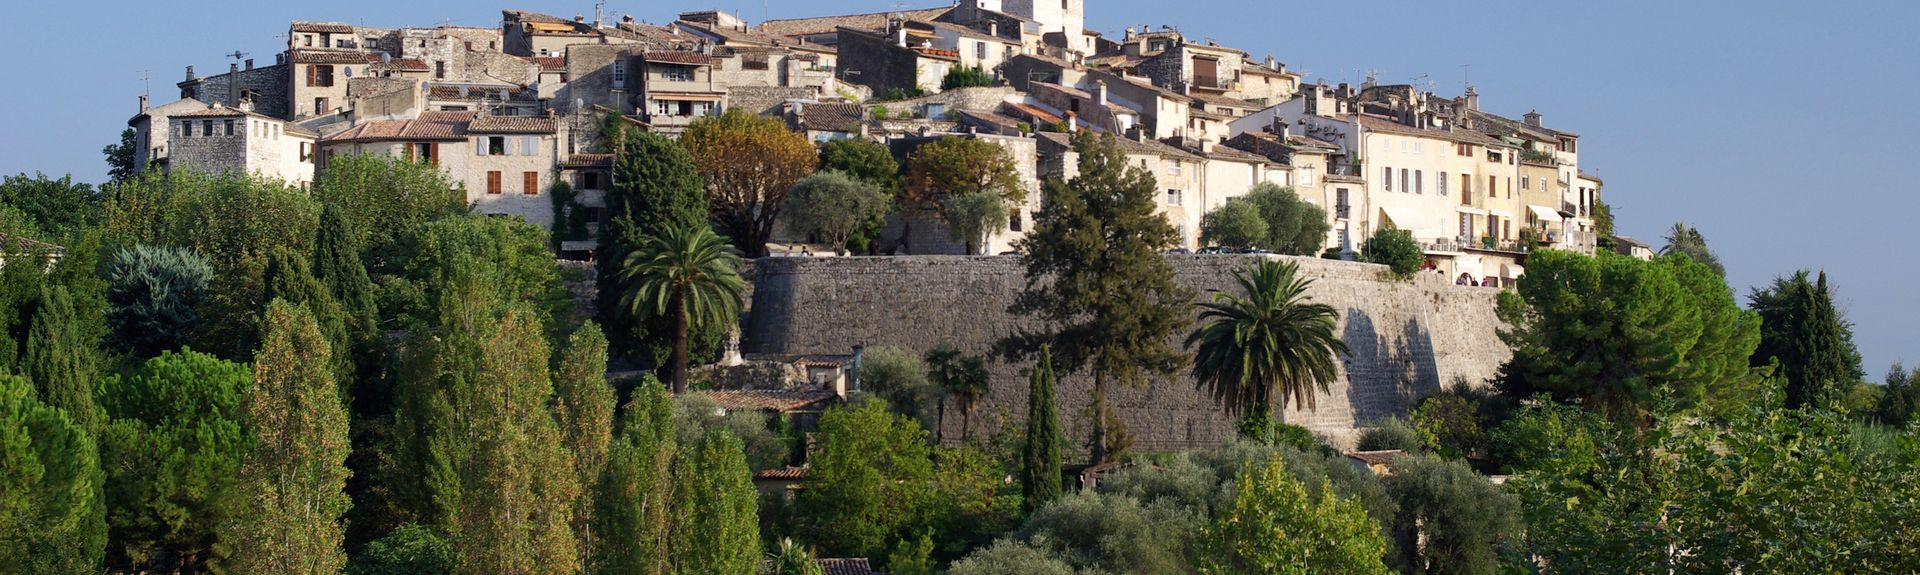 Saint-Paul-de-Vence, Alpes-Maritimes, France